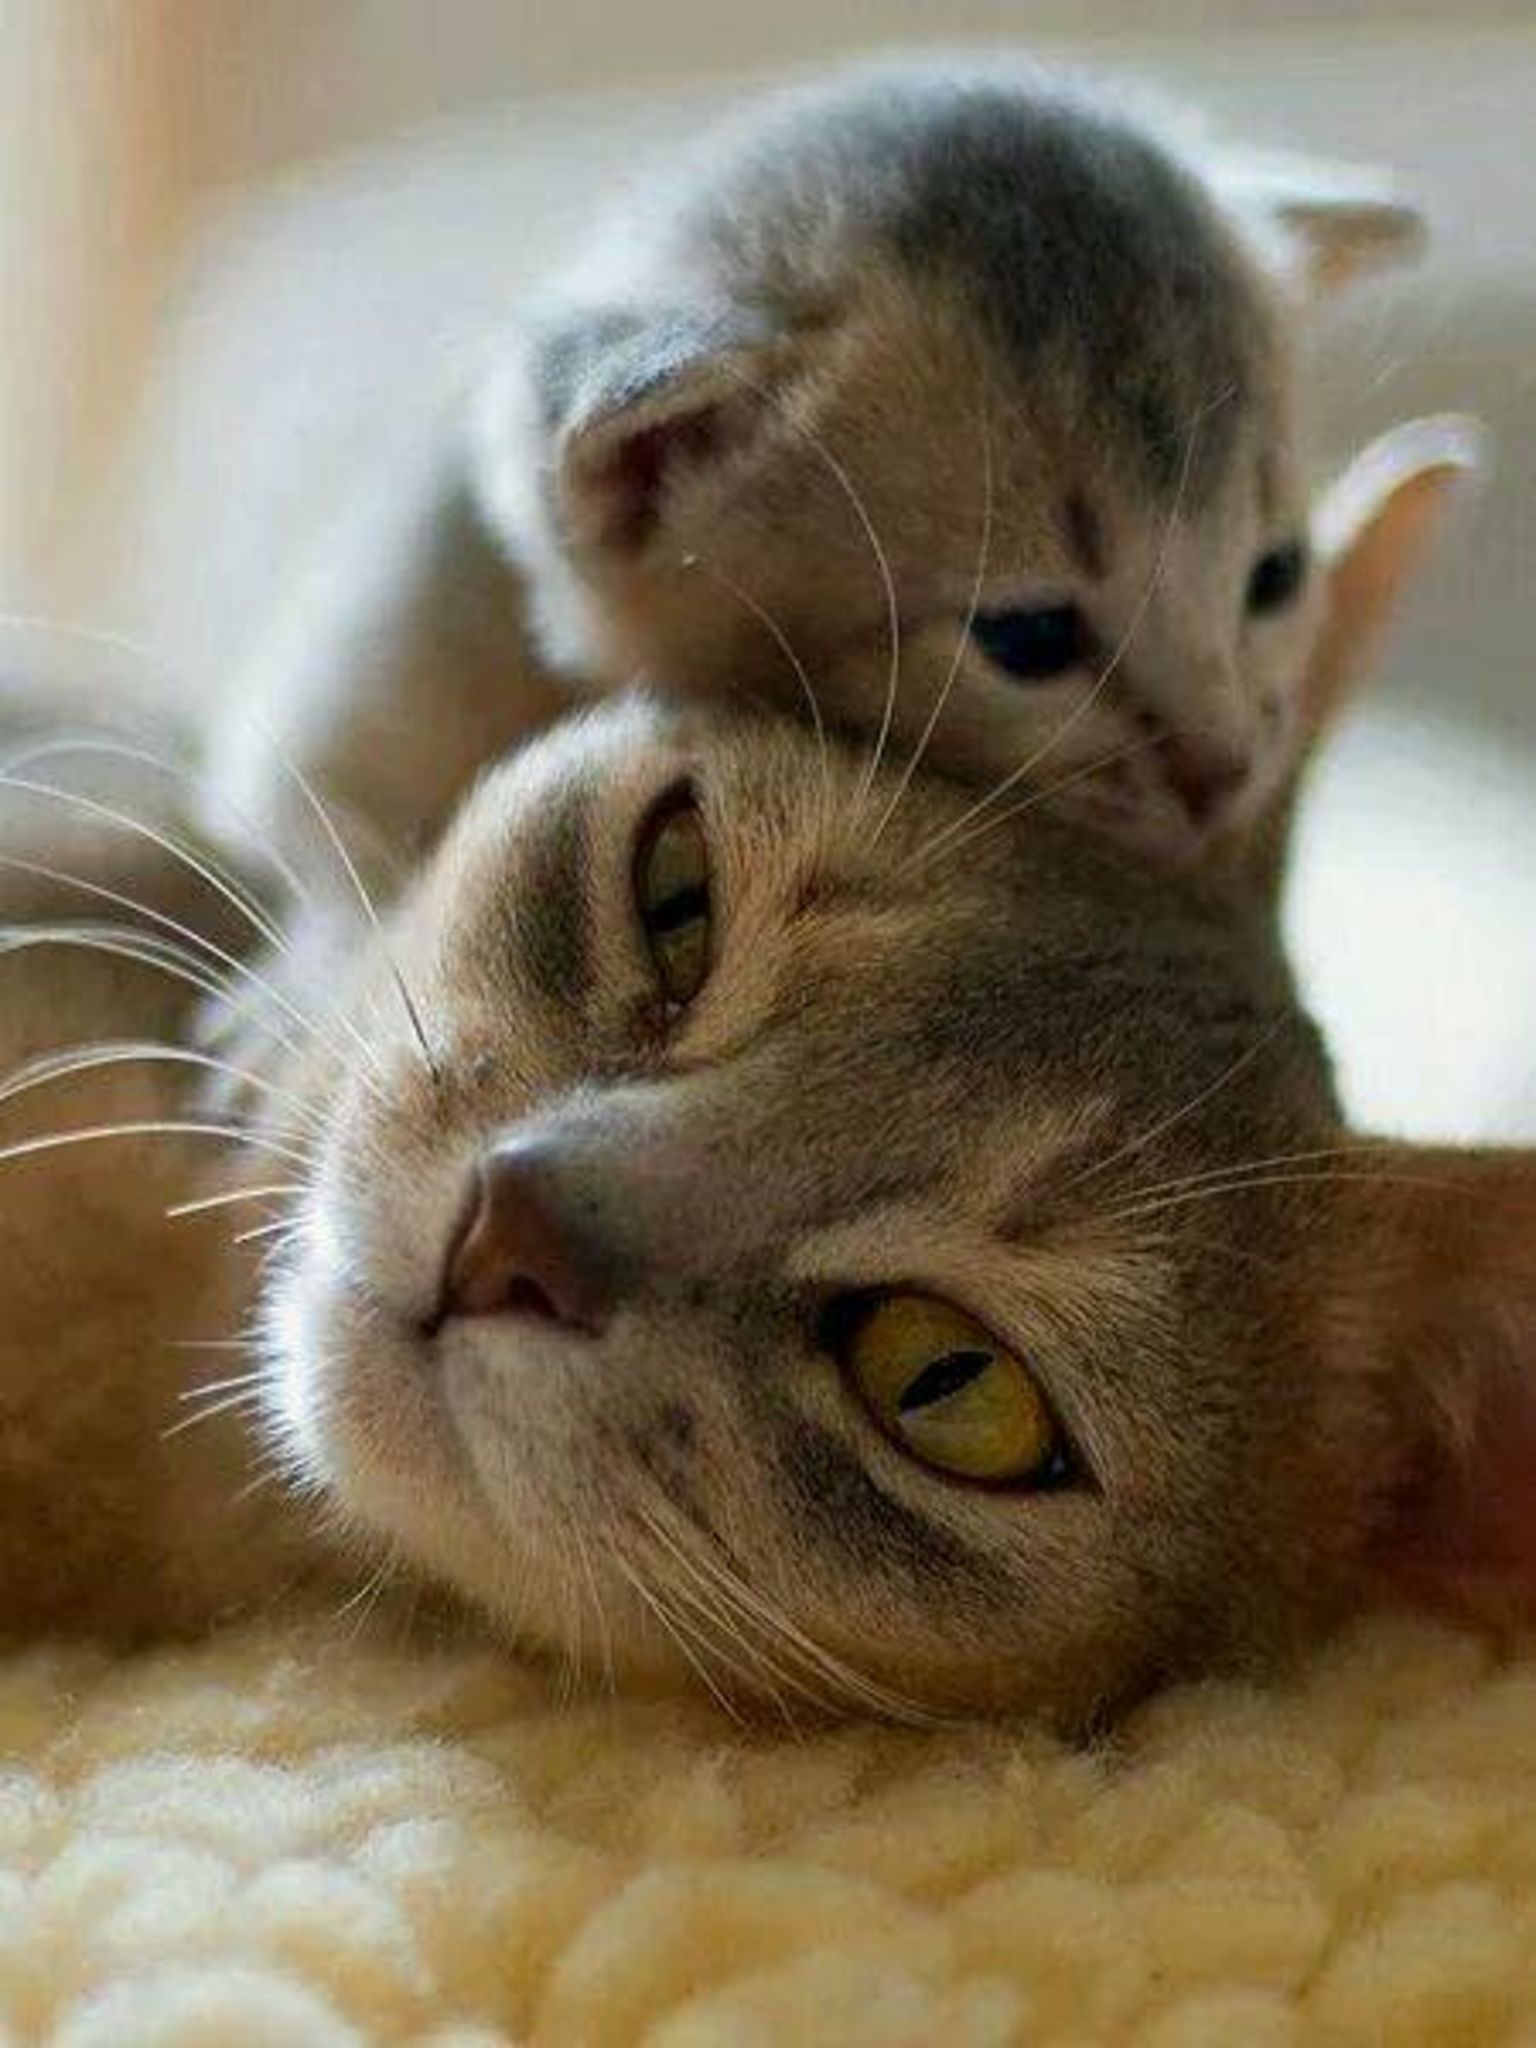 Cute mom and baby cat